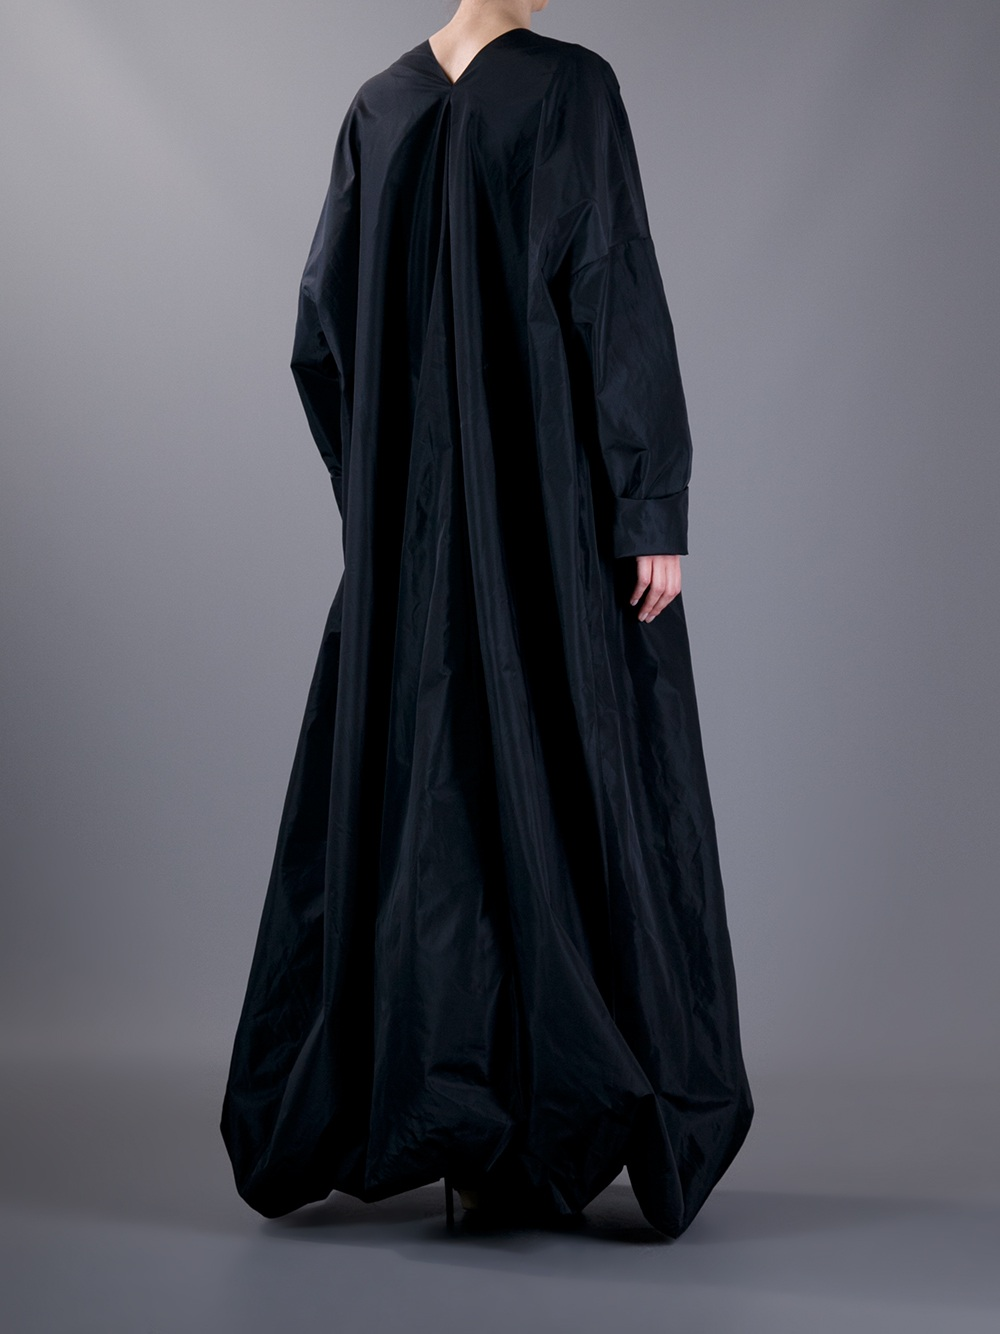 Lyst Jean Paul Gaultier Maxi Dress And Cape In Black